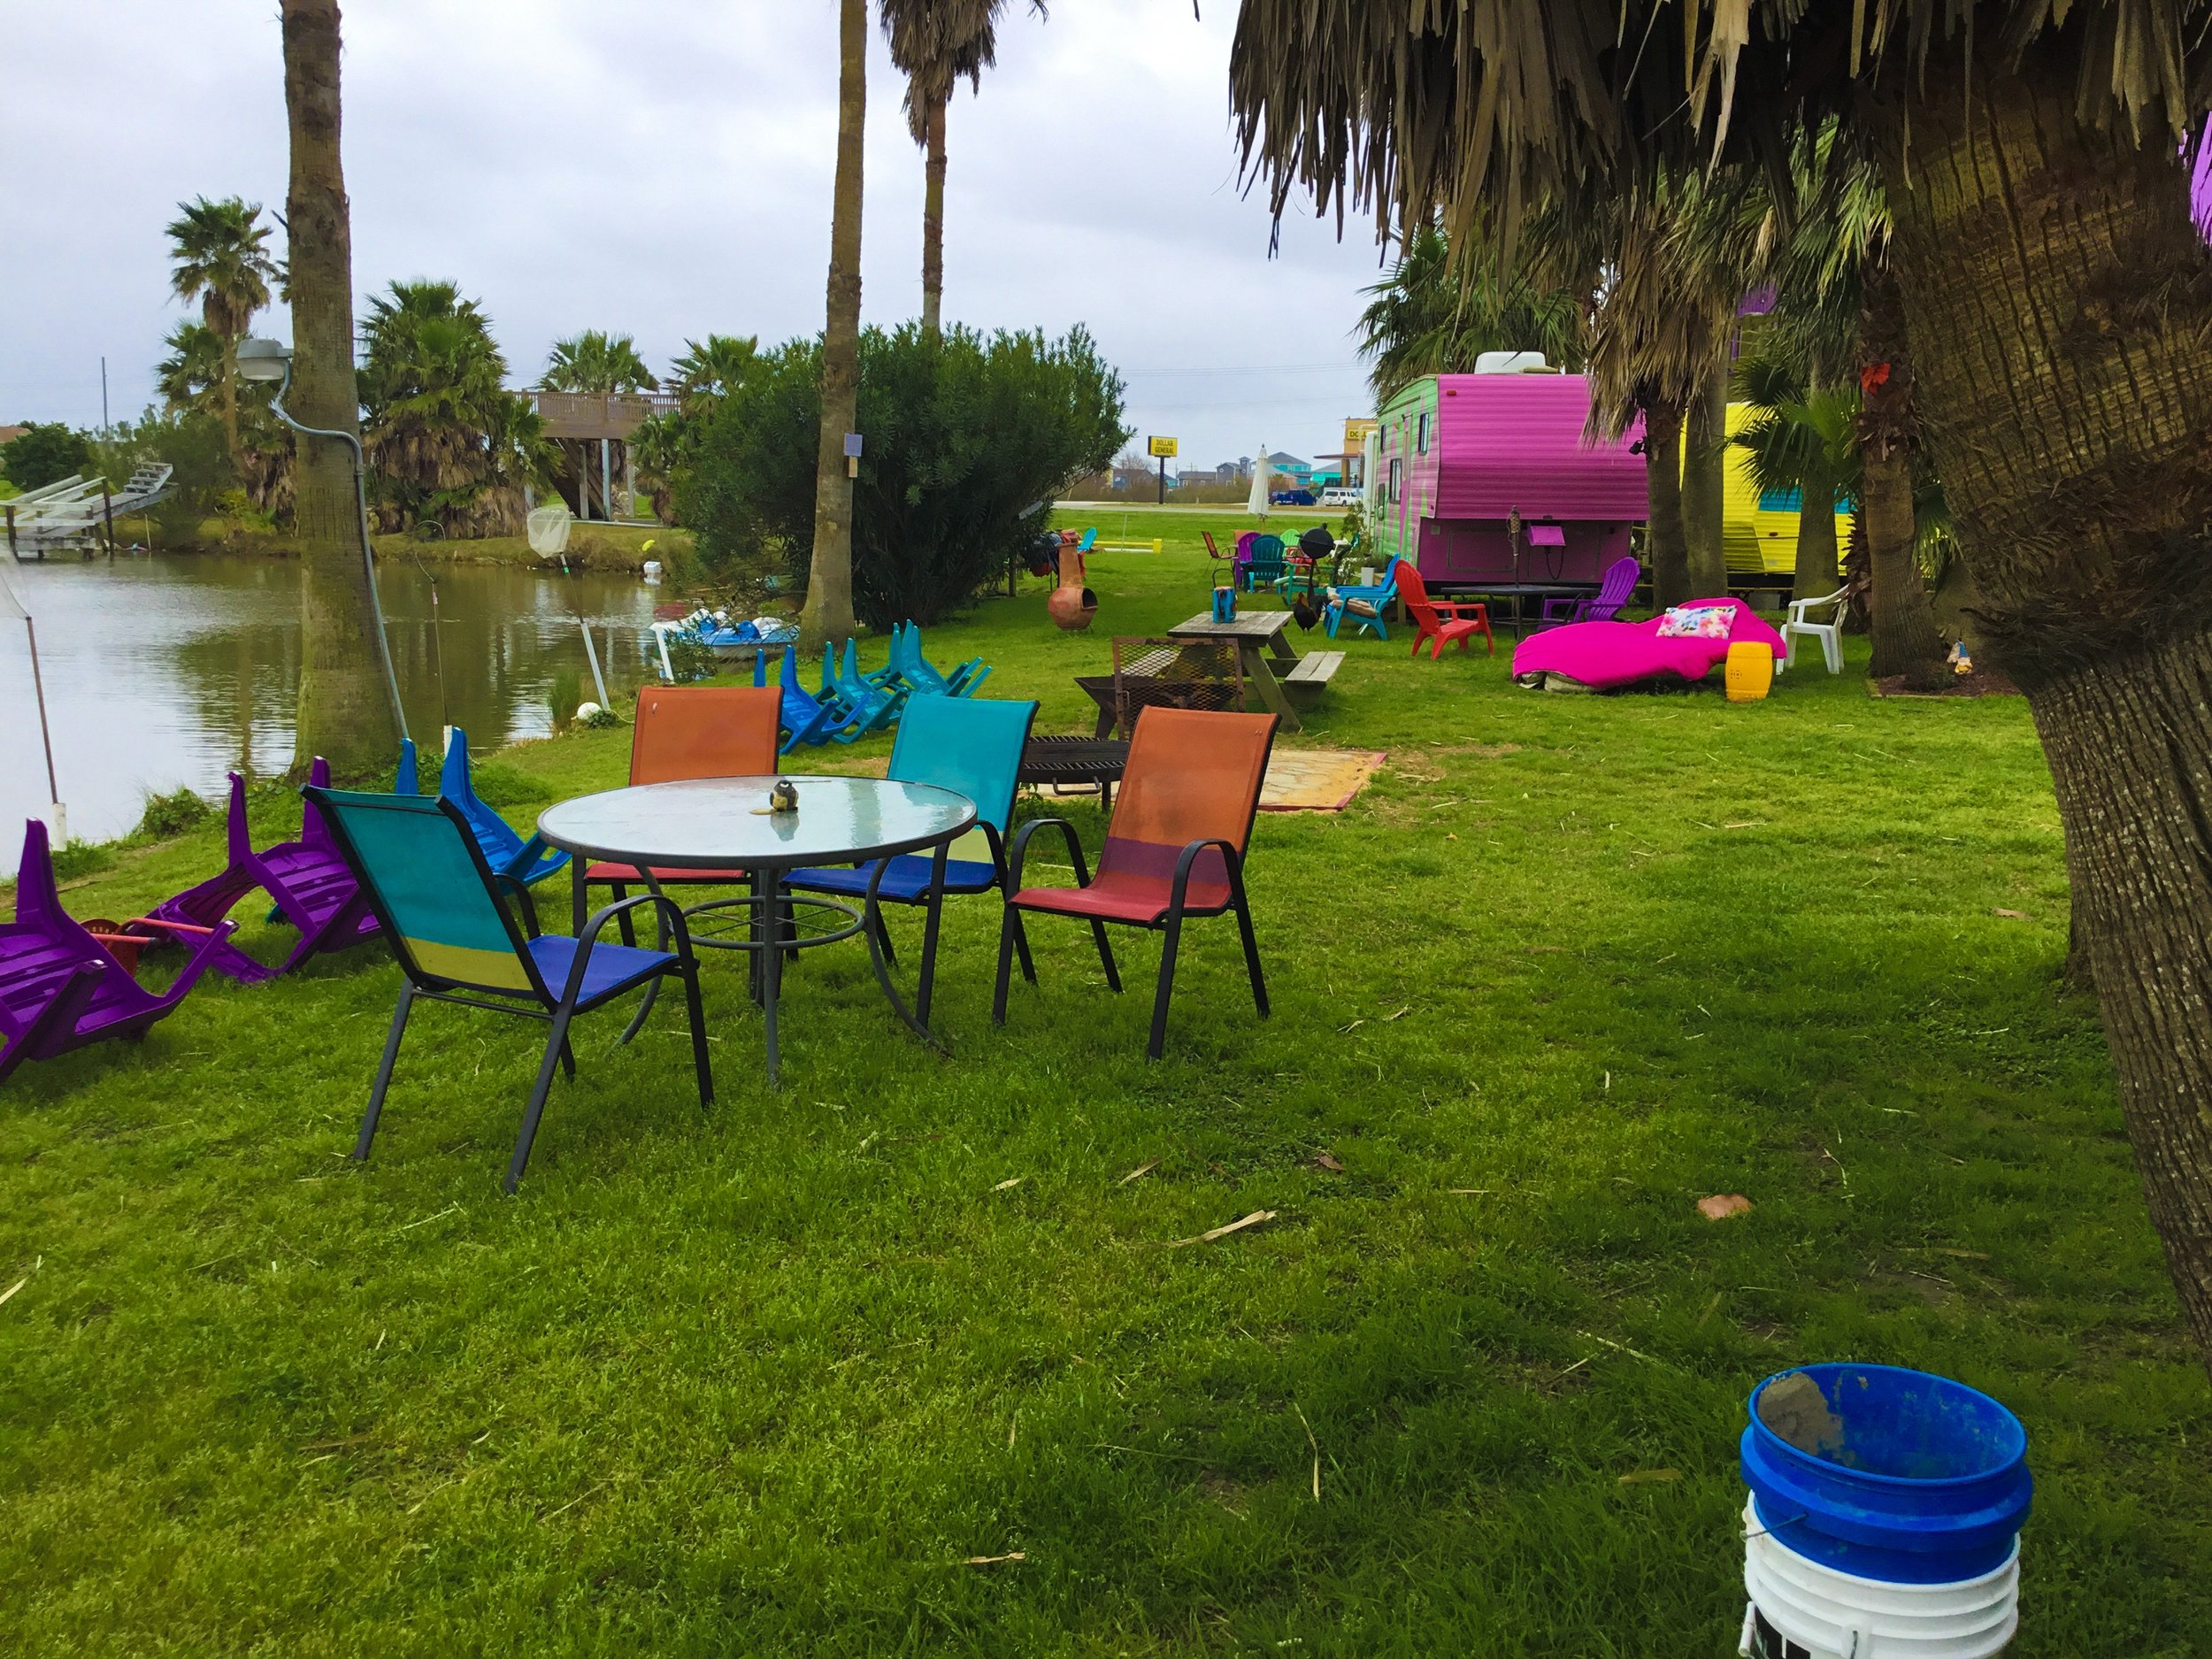 Tables, chairs, fire pits, and grills are common near all of the units.